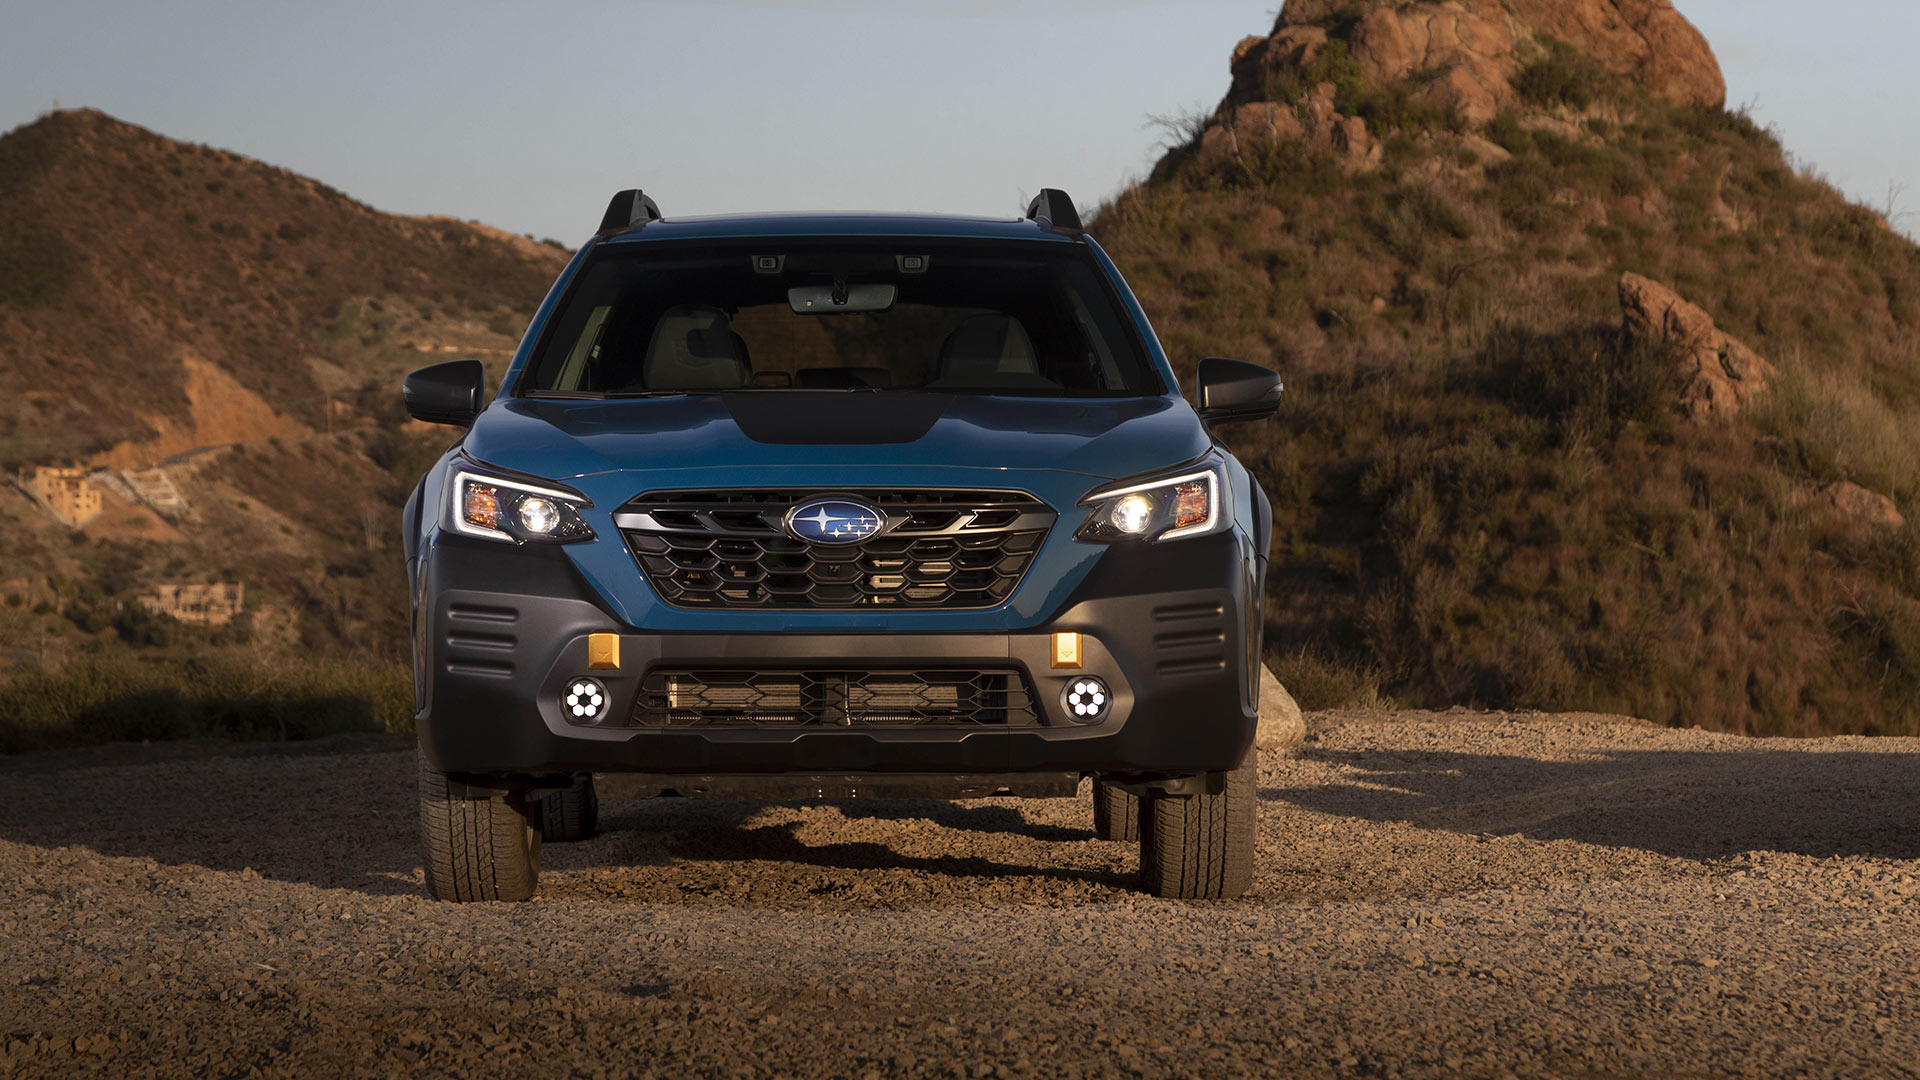 The Subaru Outback Wilderness Front View